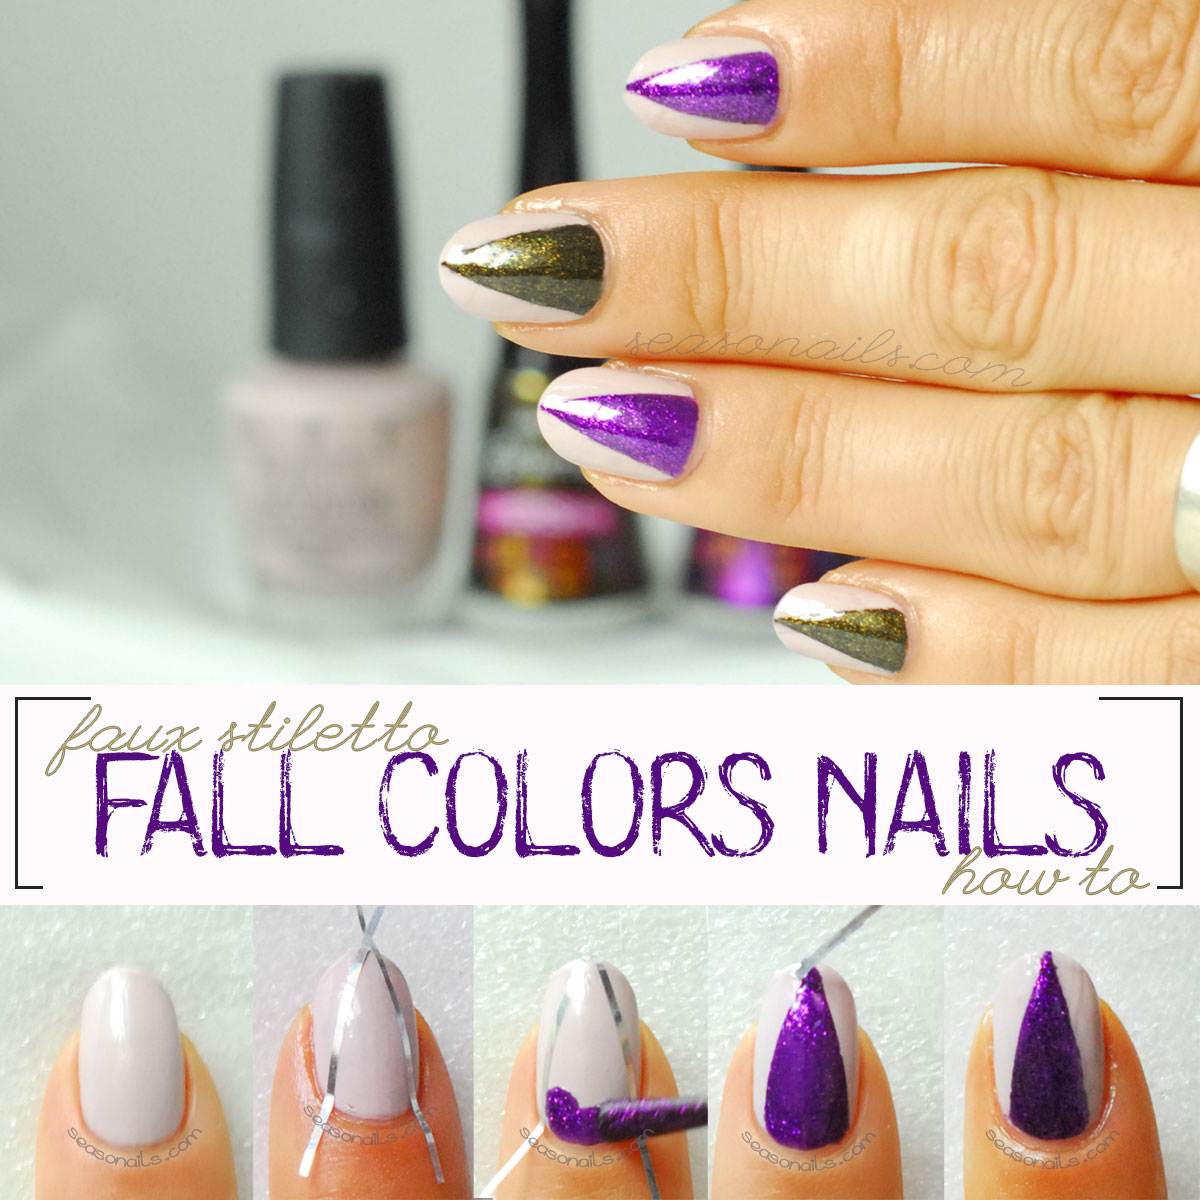 how to faux stiletto fall nails step by step tutorial